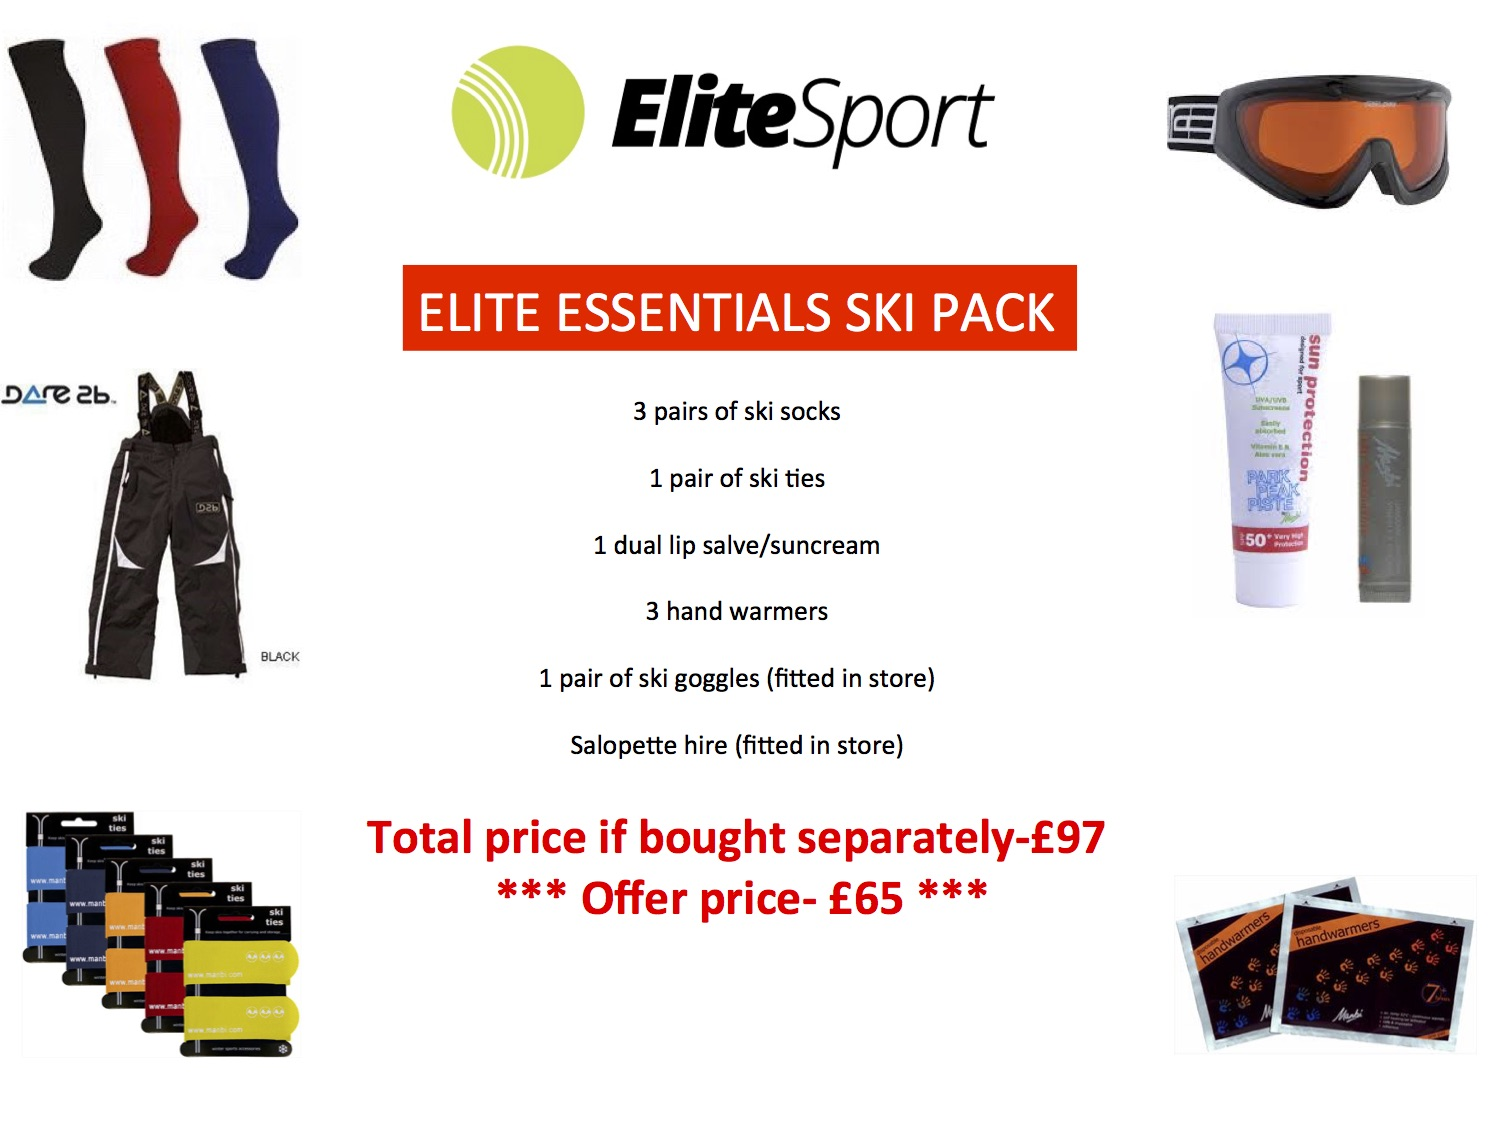 Elite Essentials Ski Pack